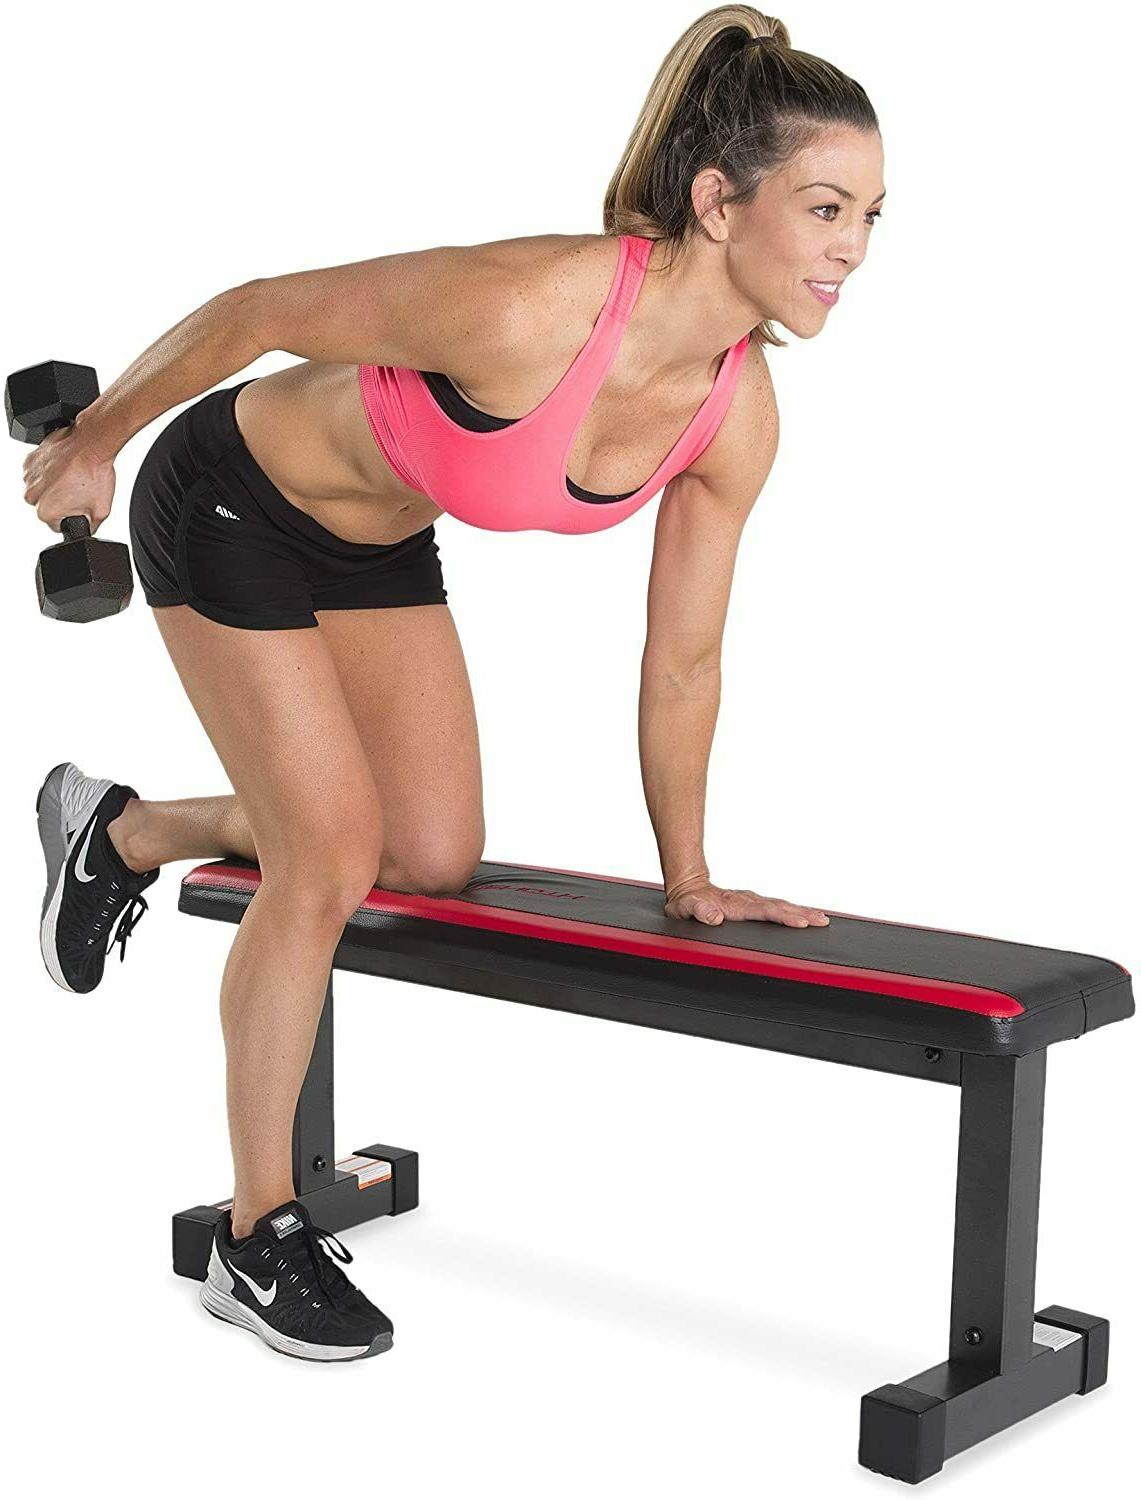 Fitness Weight Exercise Home Strength